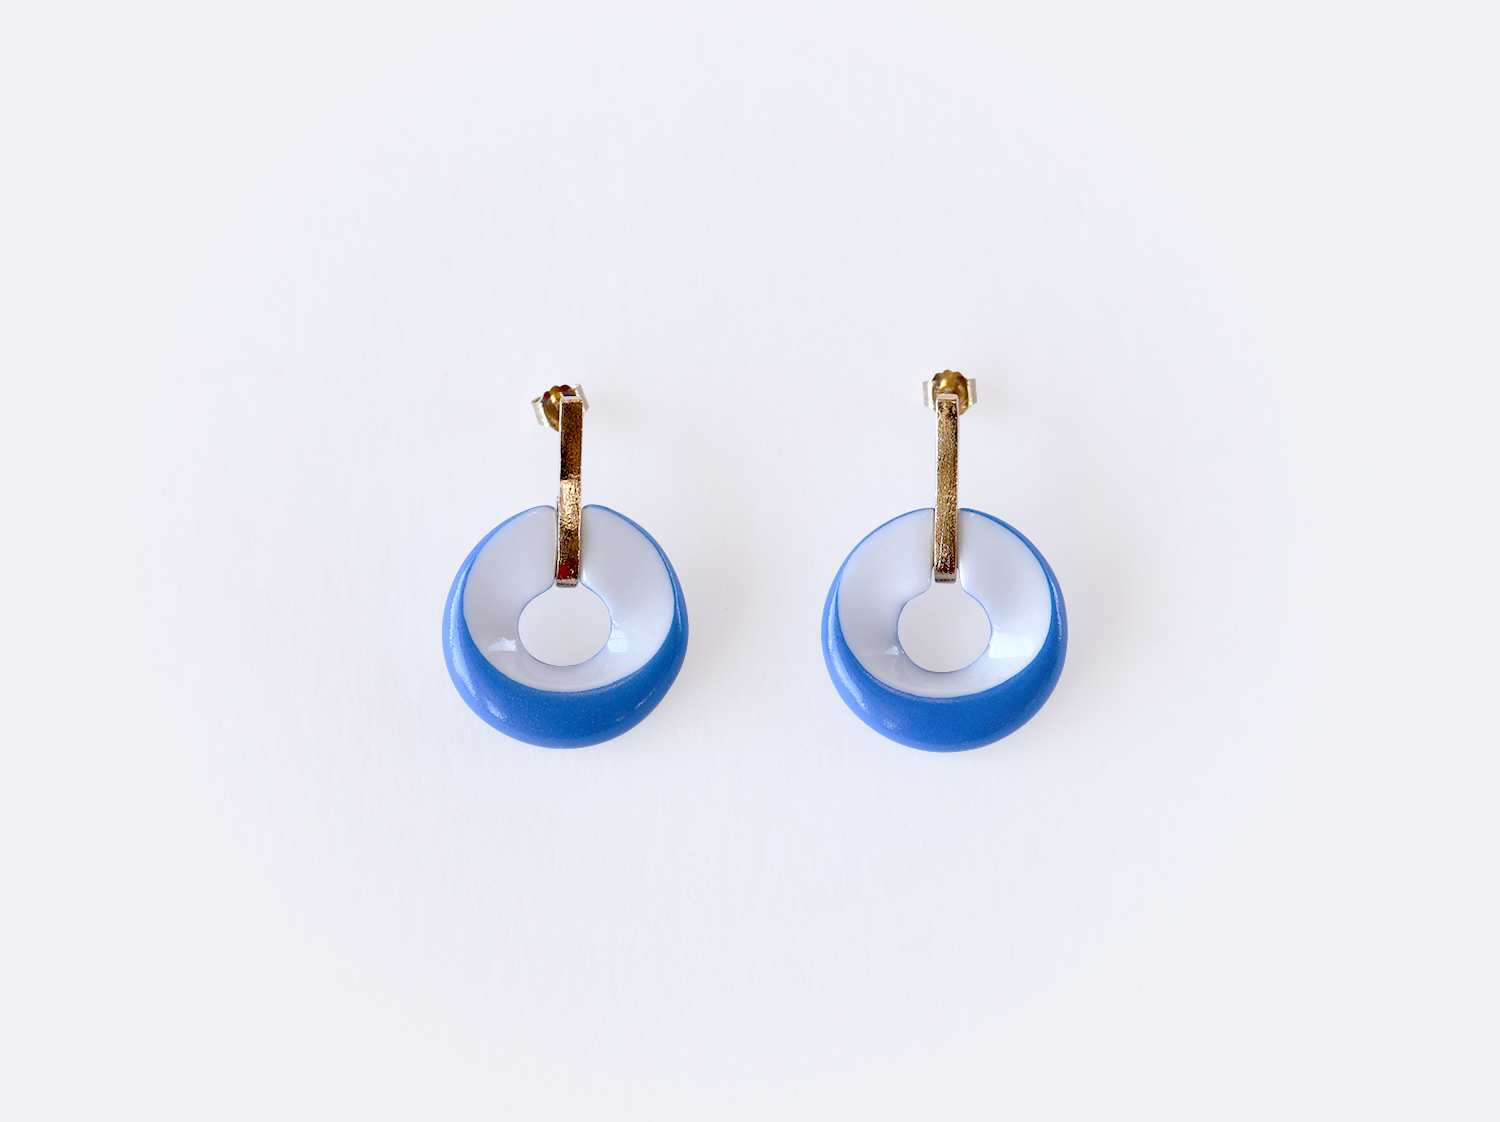 China Earrings of the collection ALBA BLEU | Bernardaud